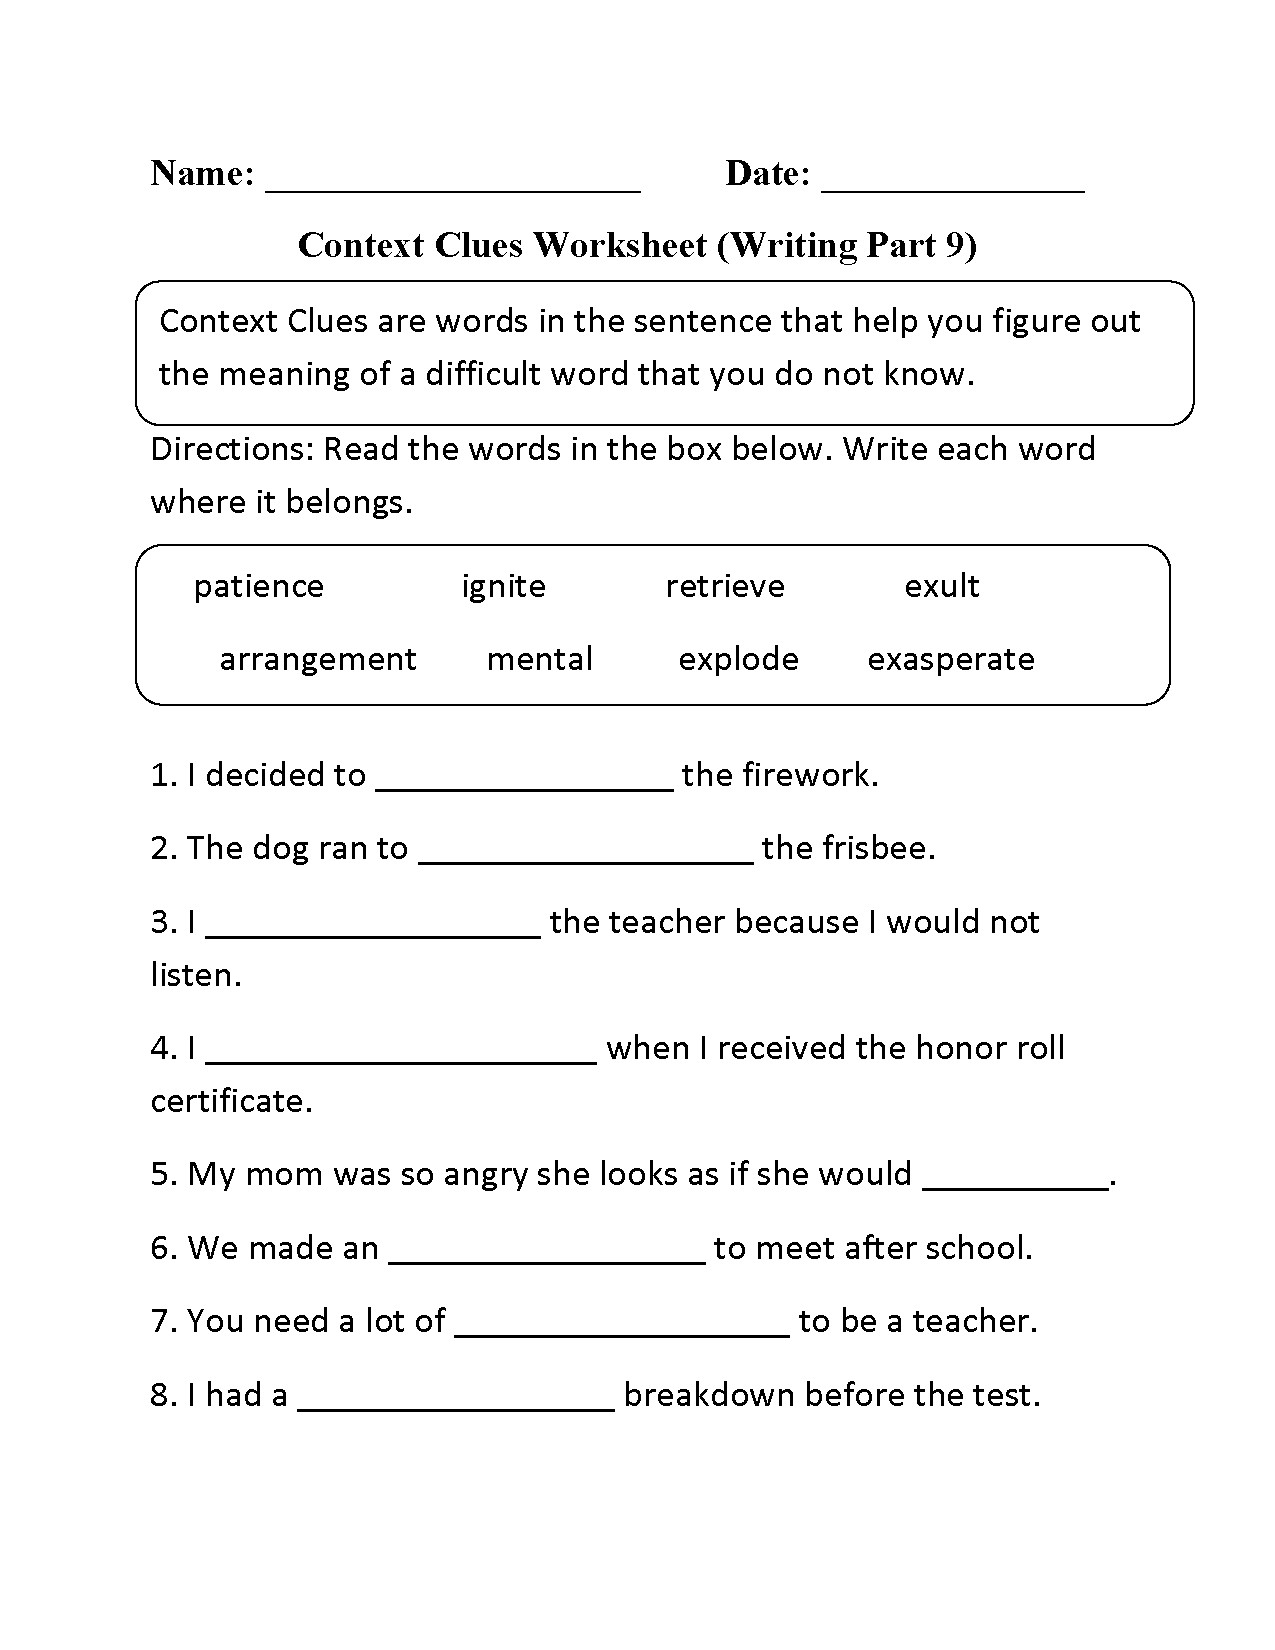 Context Clues Worksheets 2nd Grade 5th Grade Context Clues Worksheets